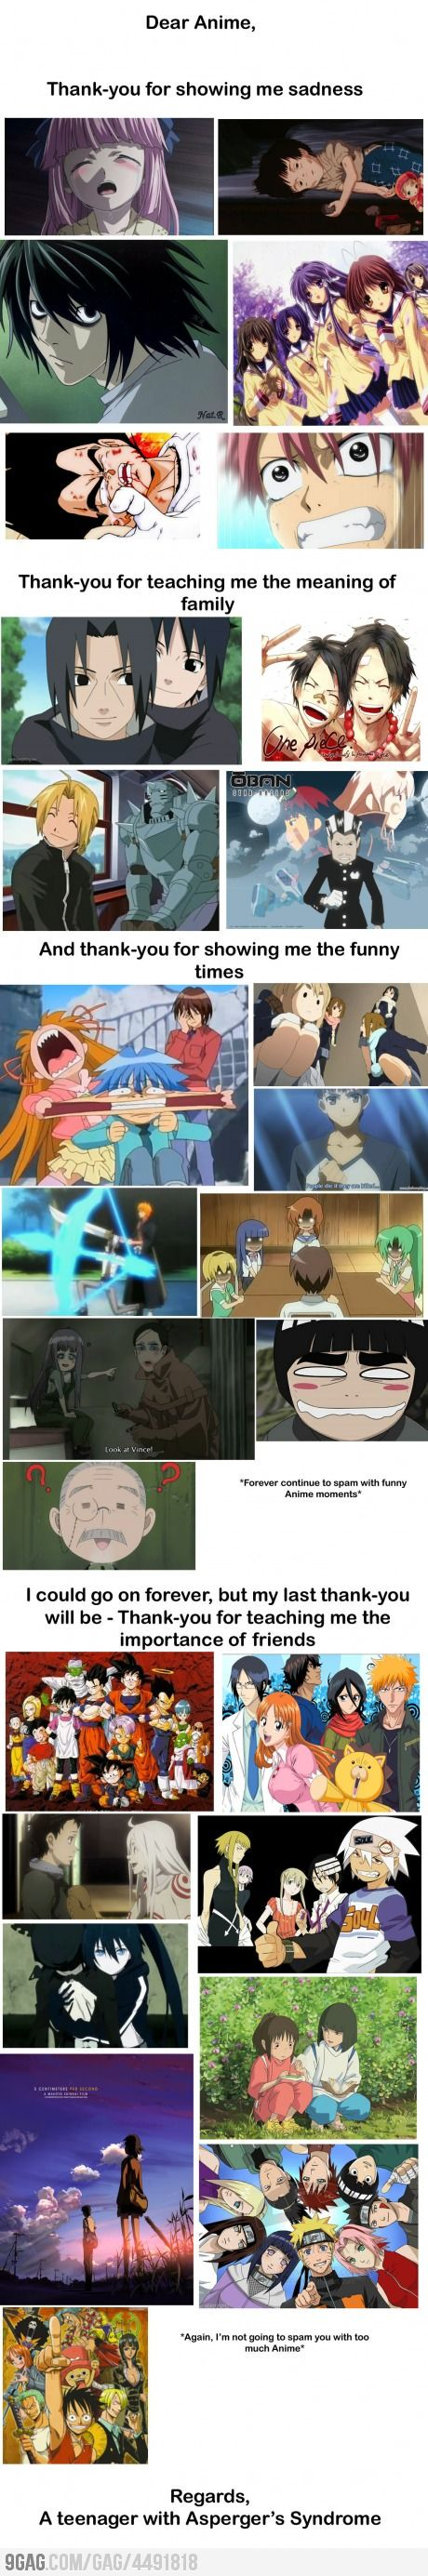 True Anime Story, this made me smile :)